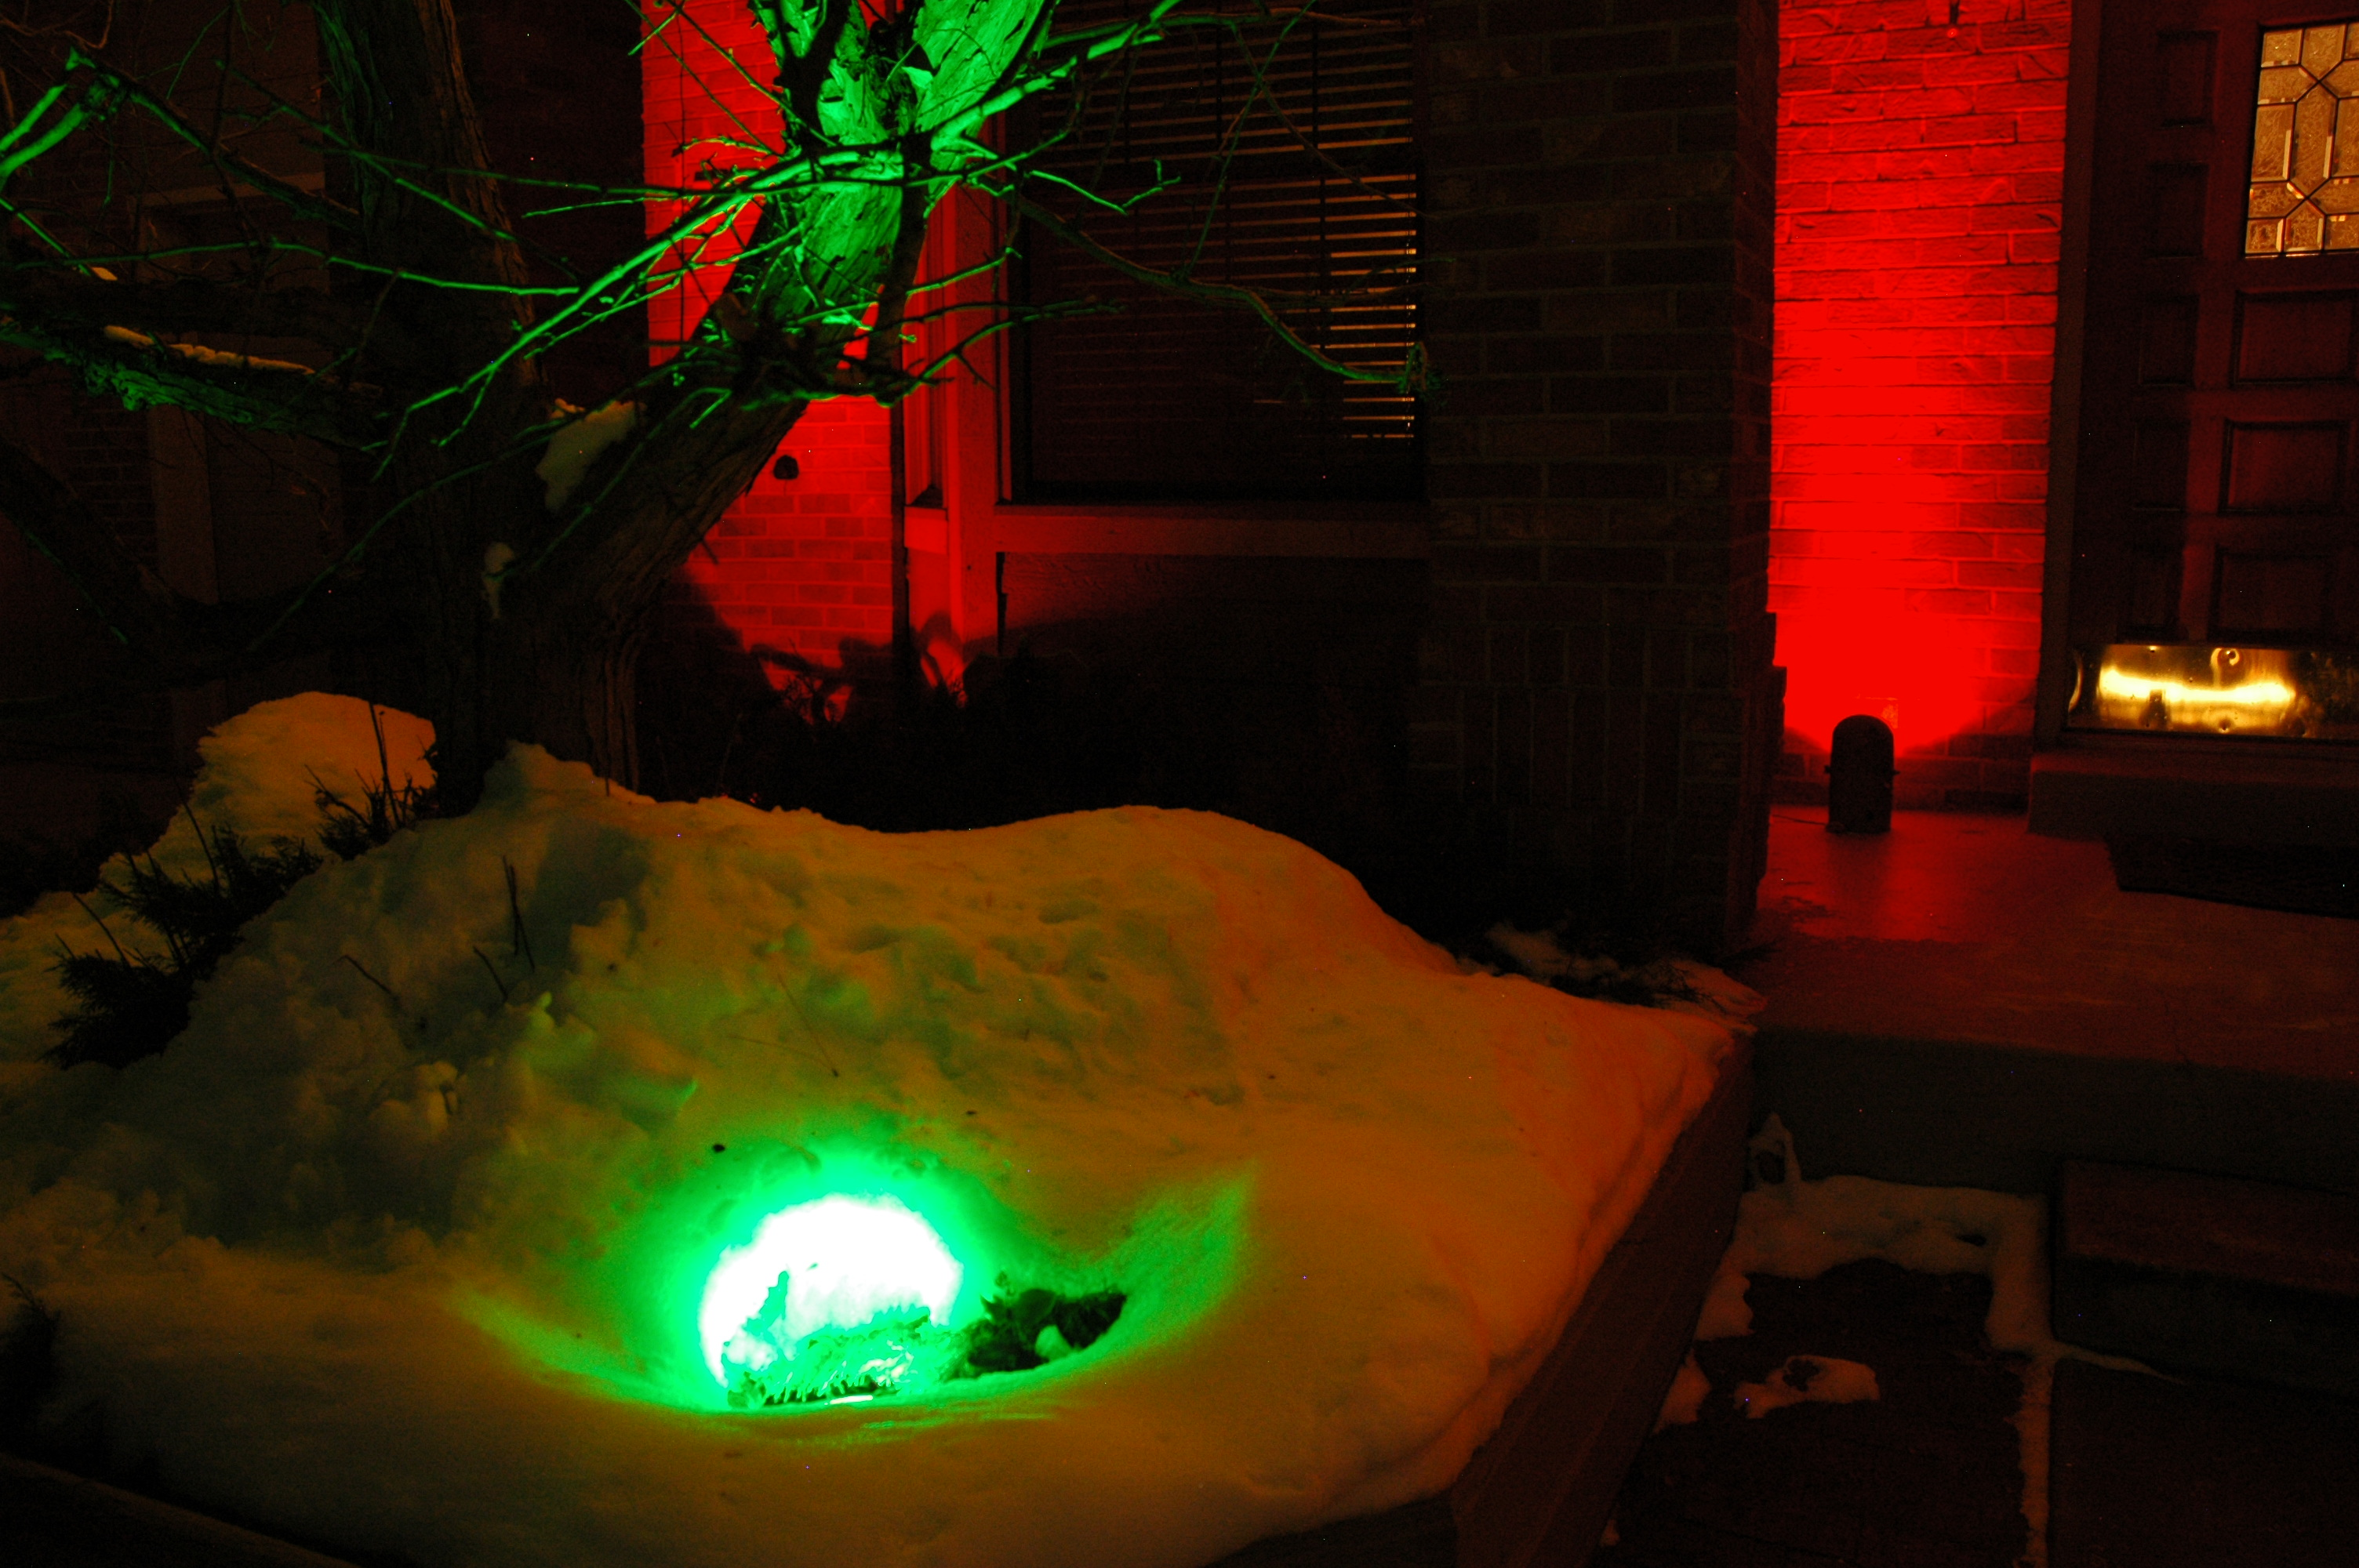 Christmas Colored Flood Lights With Color Lens Covers For Your Landscape Lighting Fixtures Make